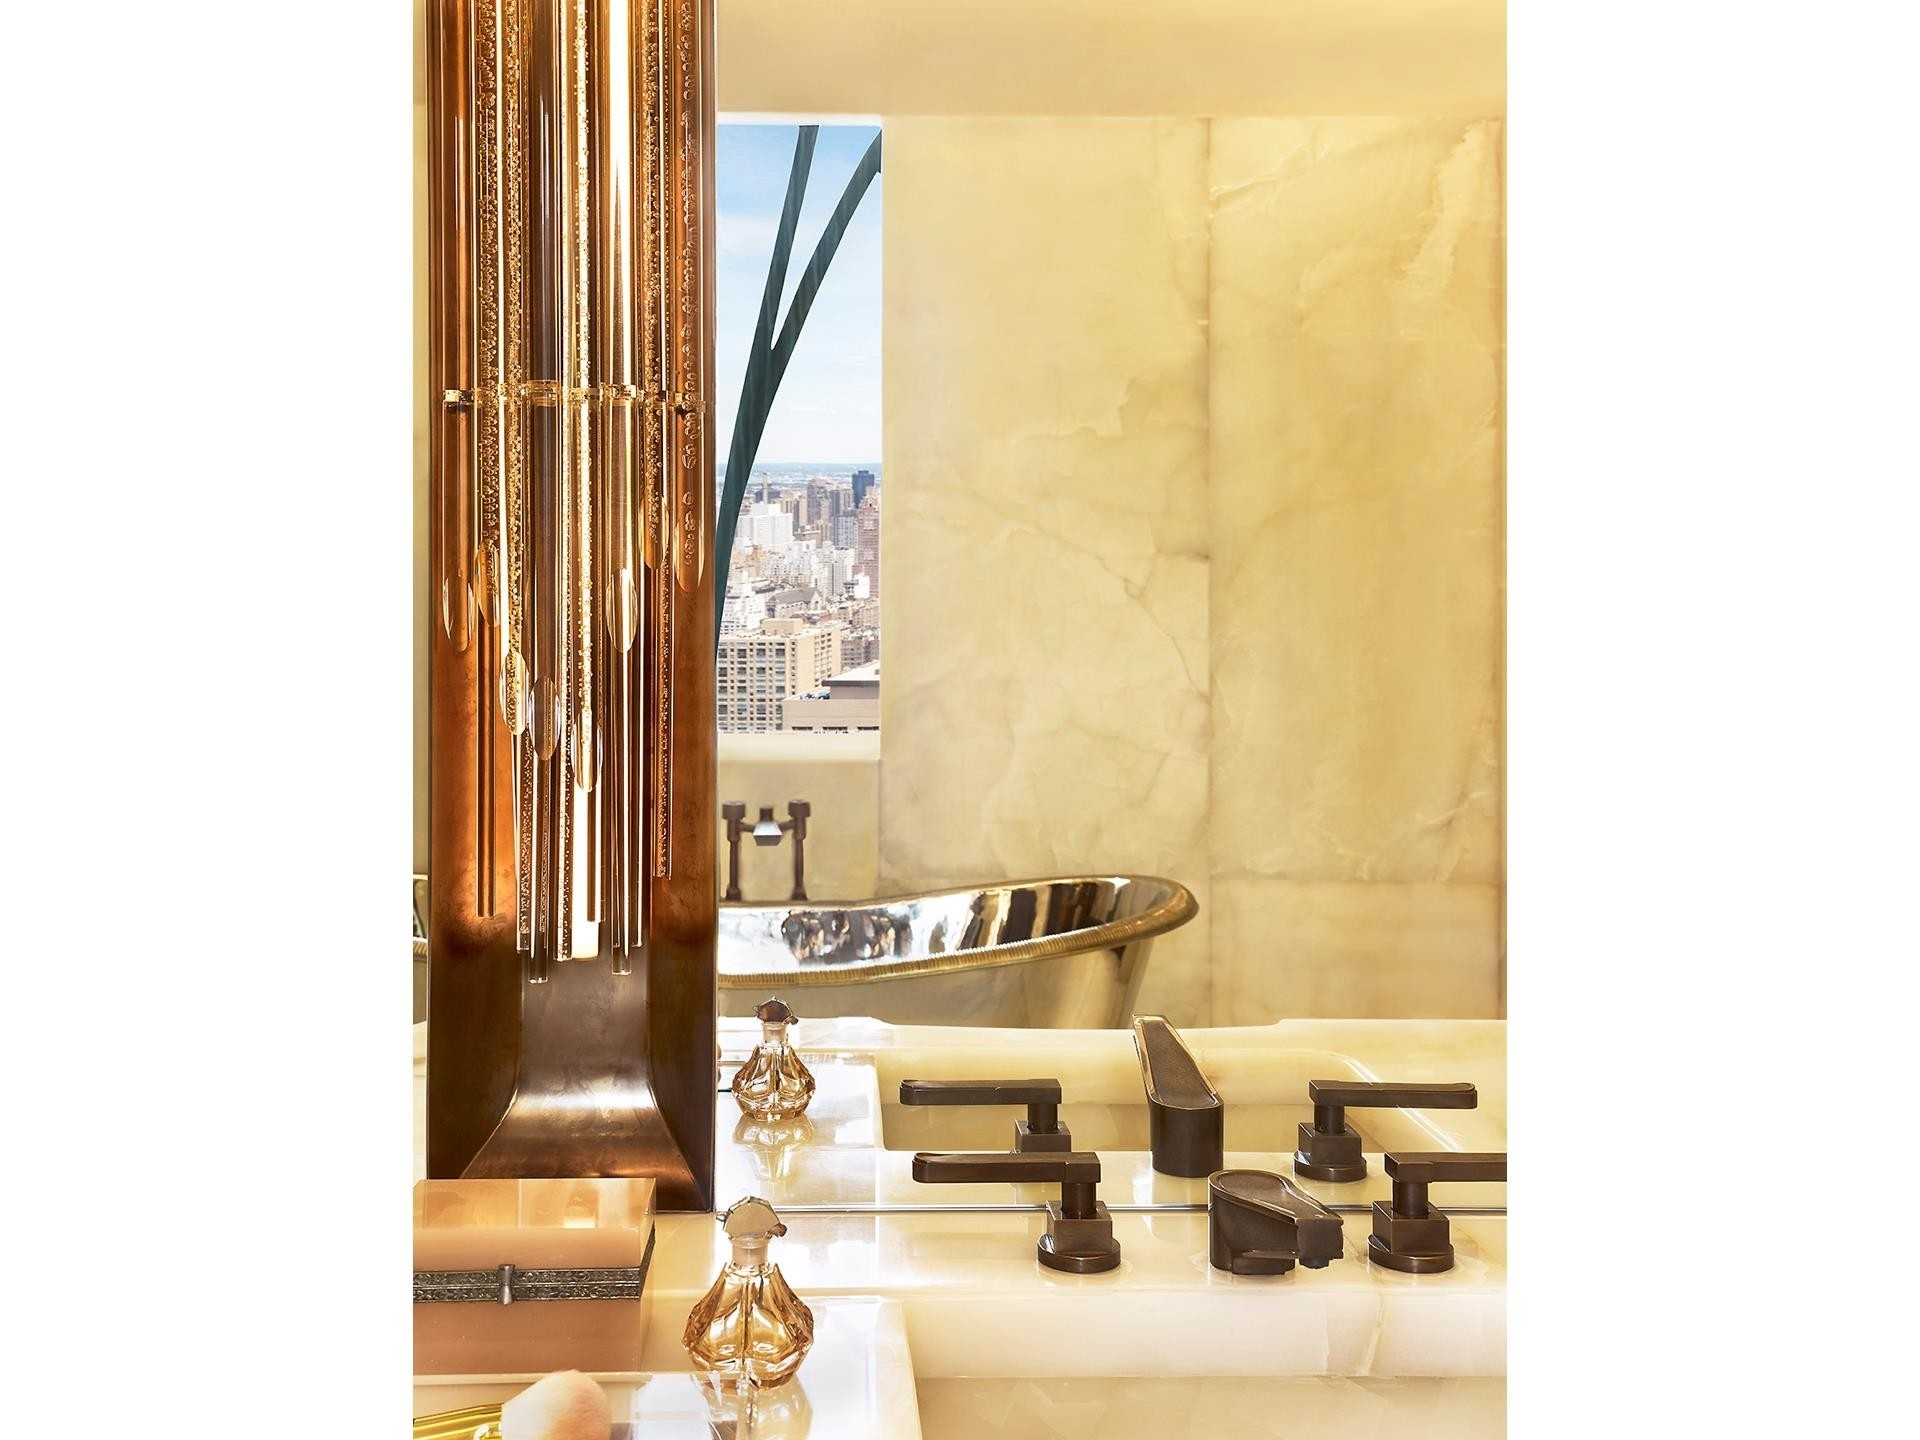 6. Condominiums for Sale at 111 W 57TH ST , 55 Midtown West, New York, NY 10019